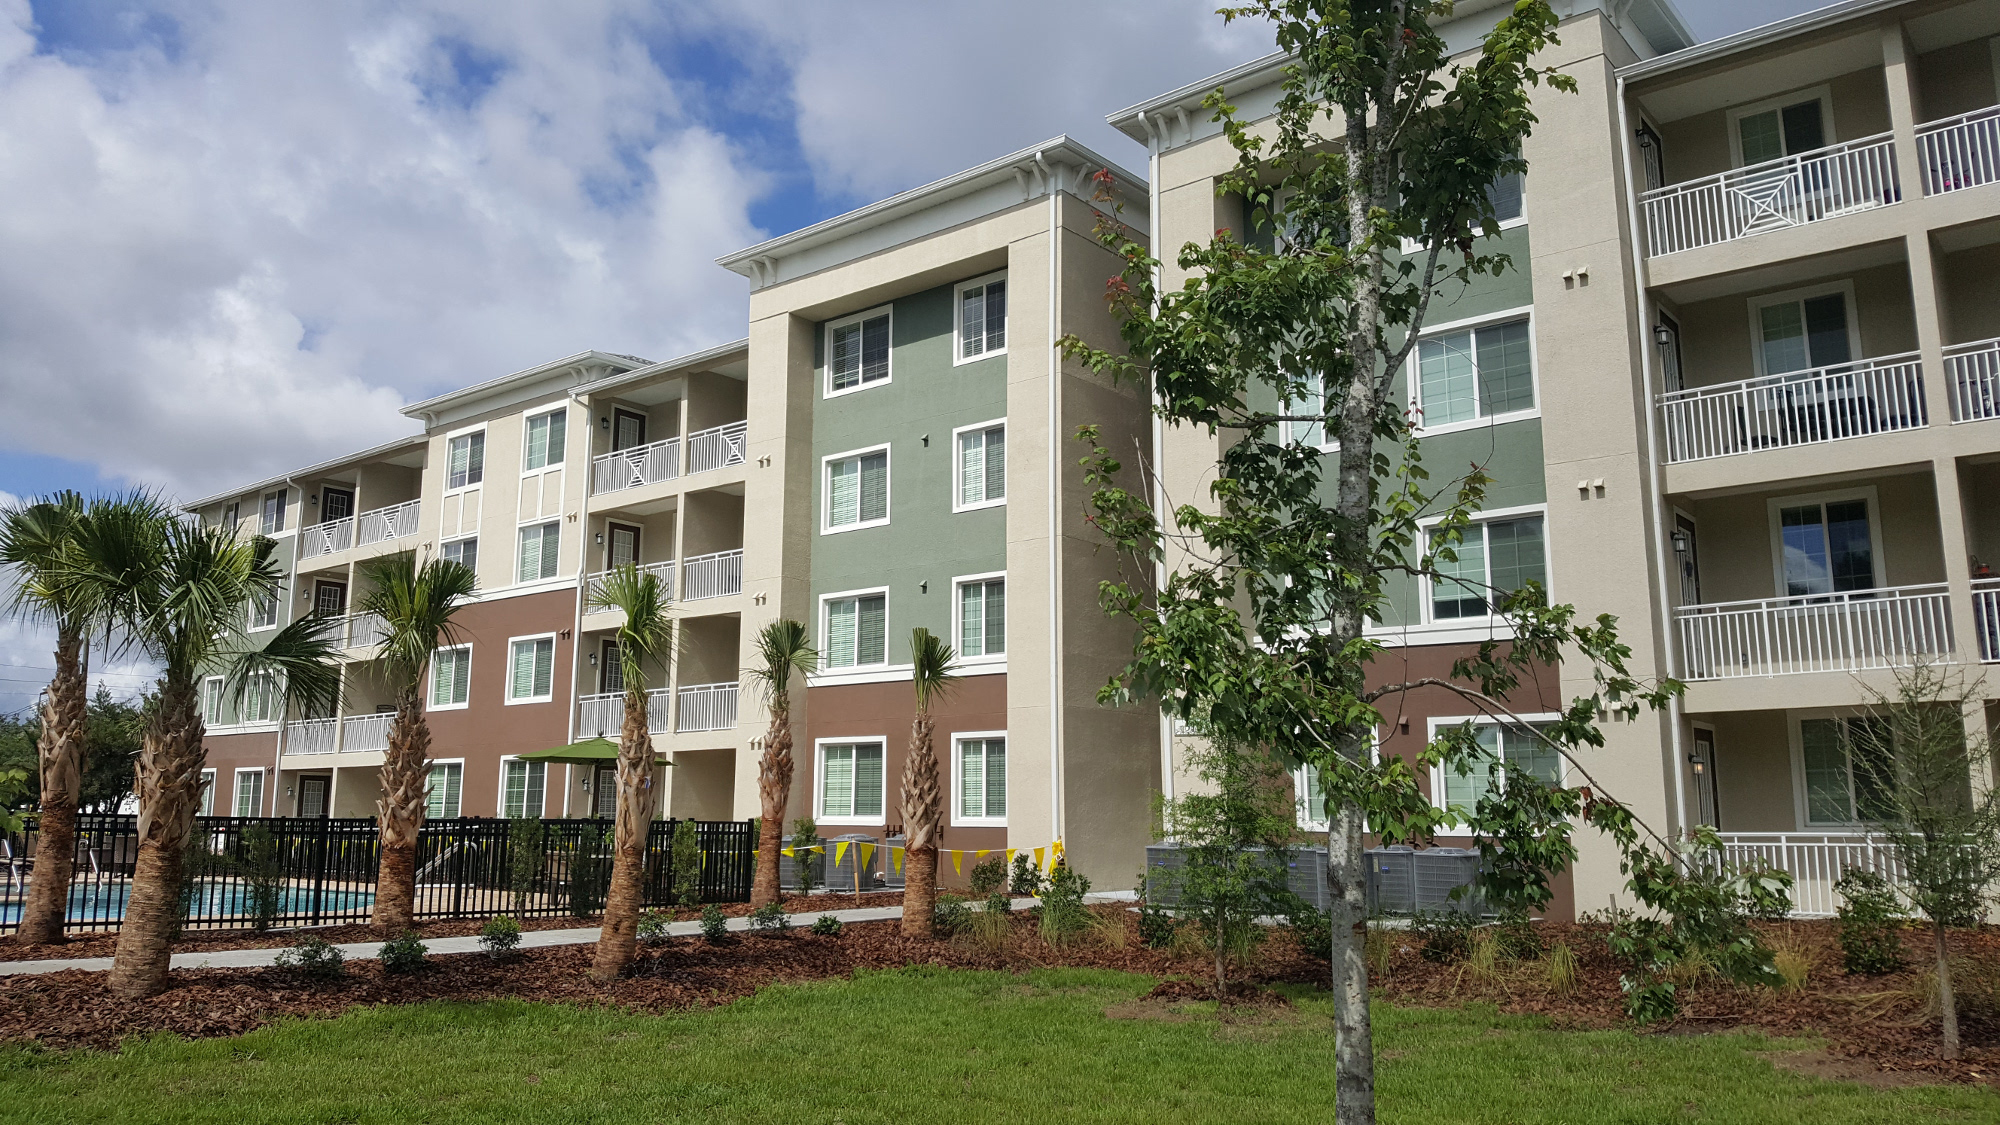 Grand Opening of Goldenrod Pointe Apartments